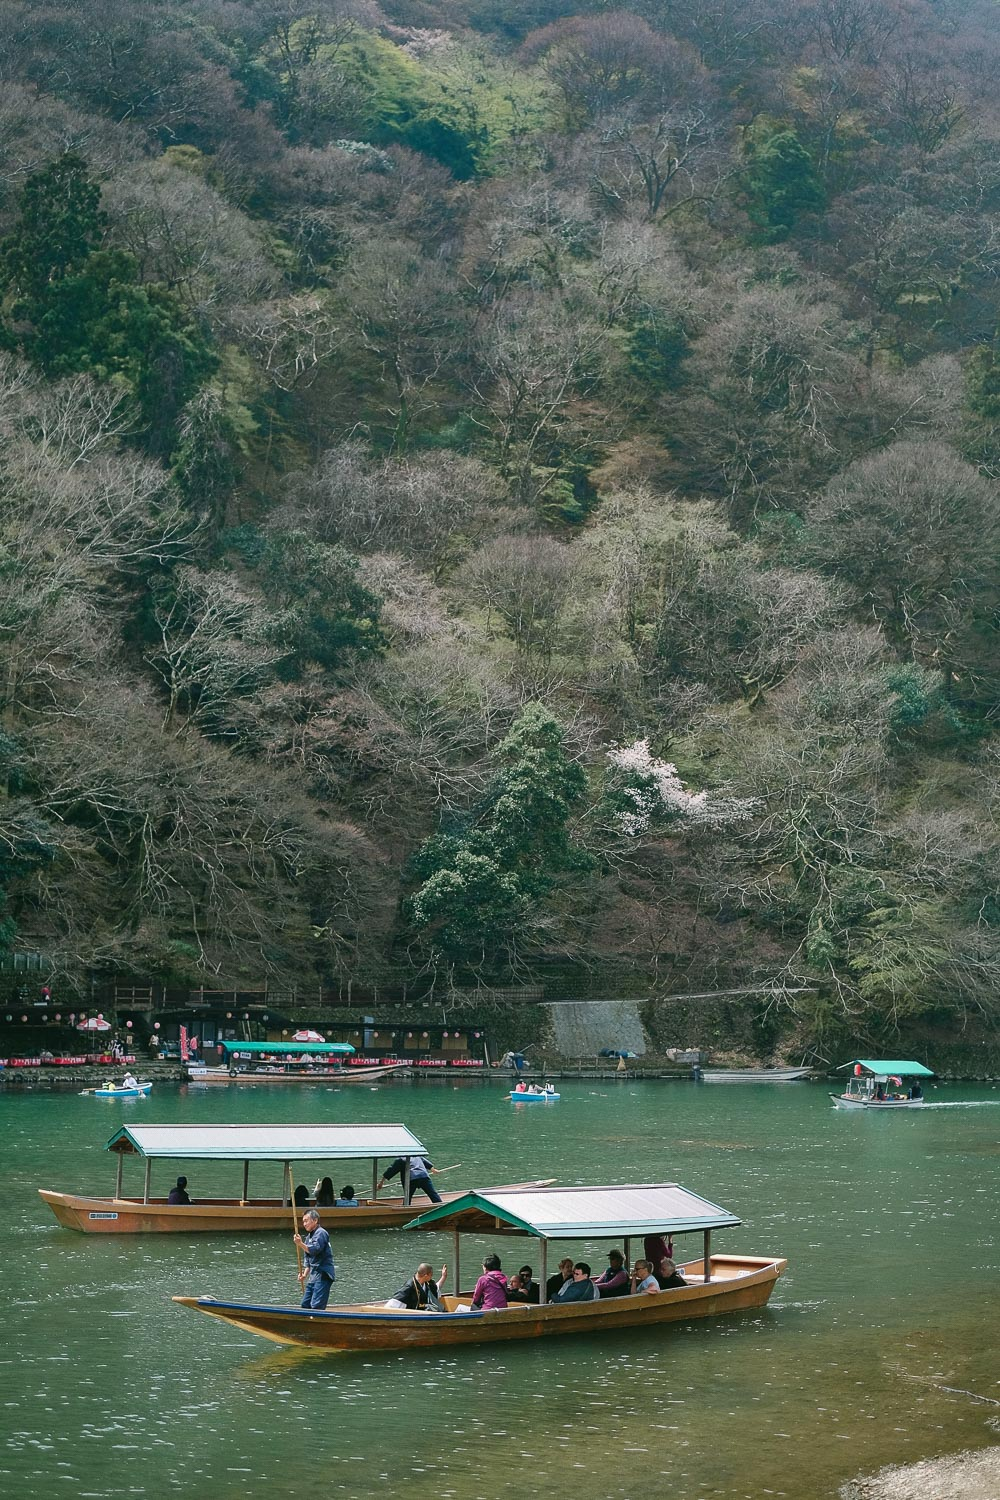 Boats in the Ōi River in Arashiyama